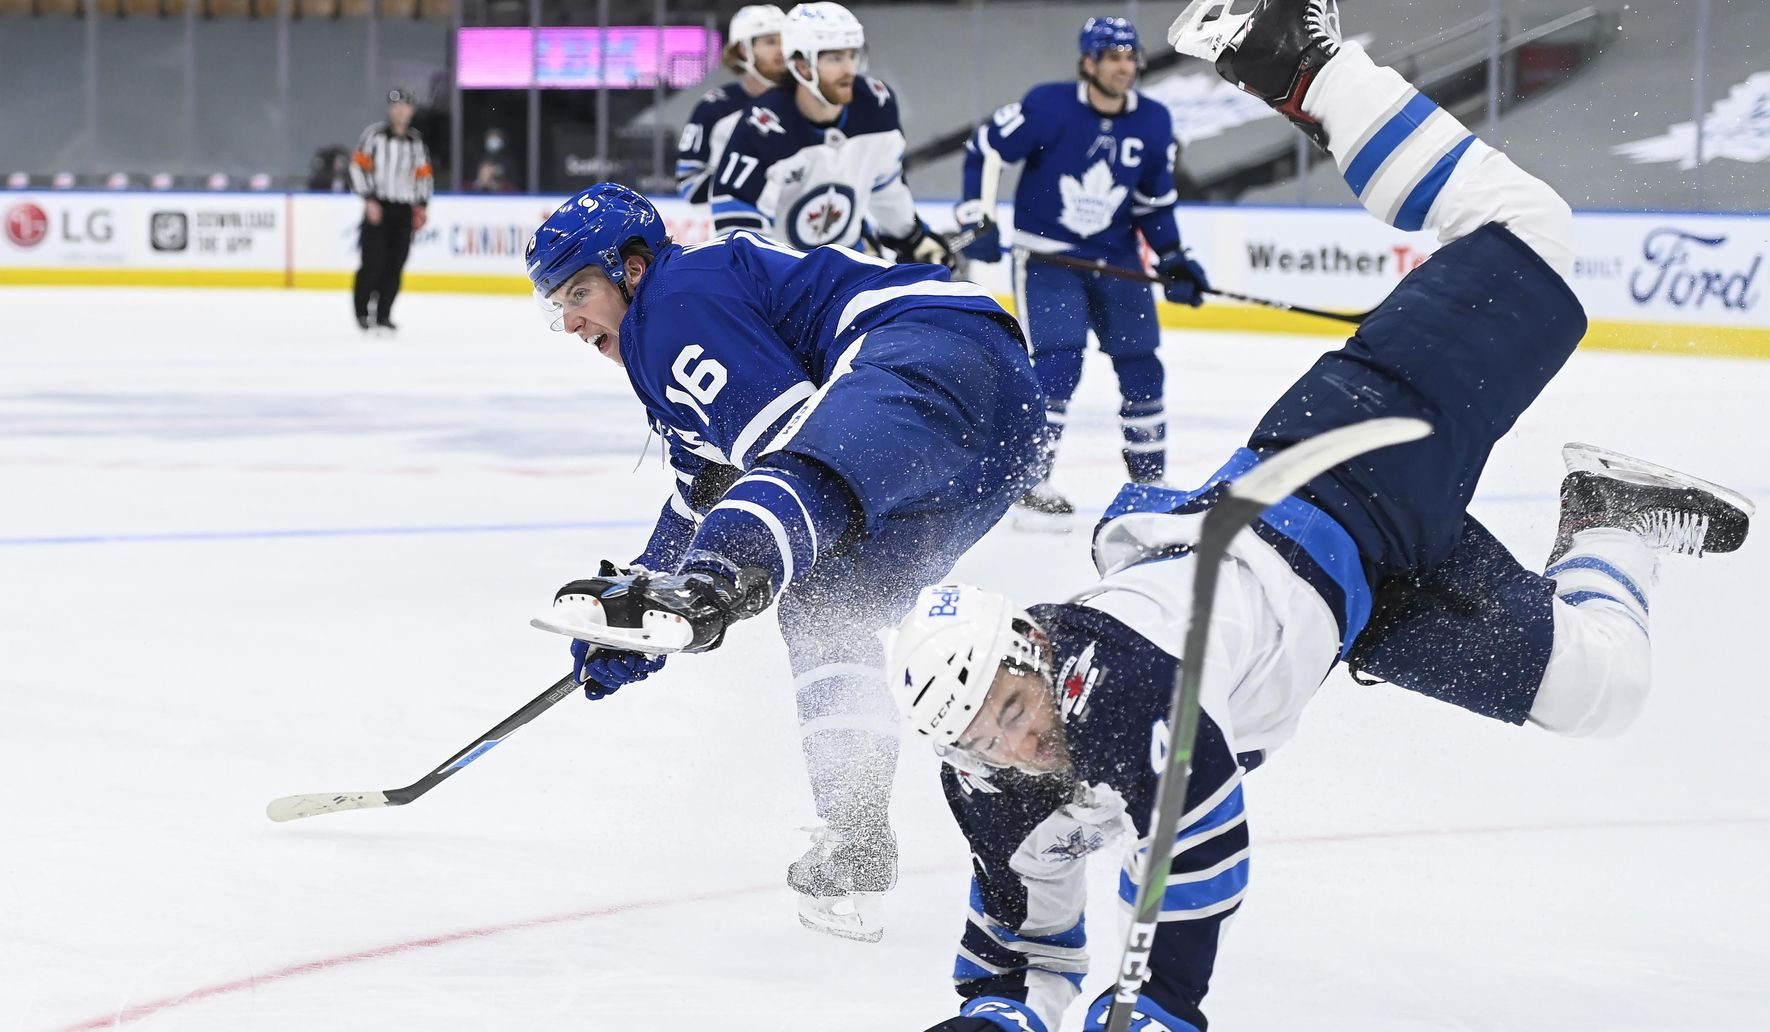 Jets_maple_leafs_hockey_89762_c0-327-4200-2775_s1770x1032